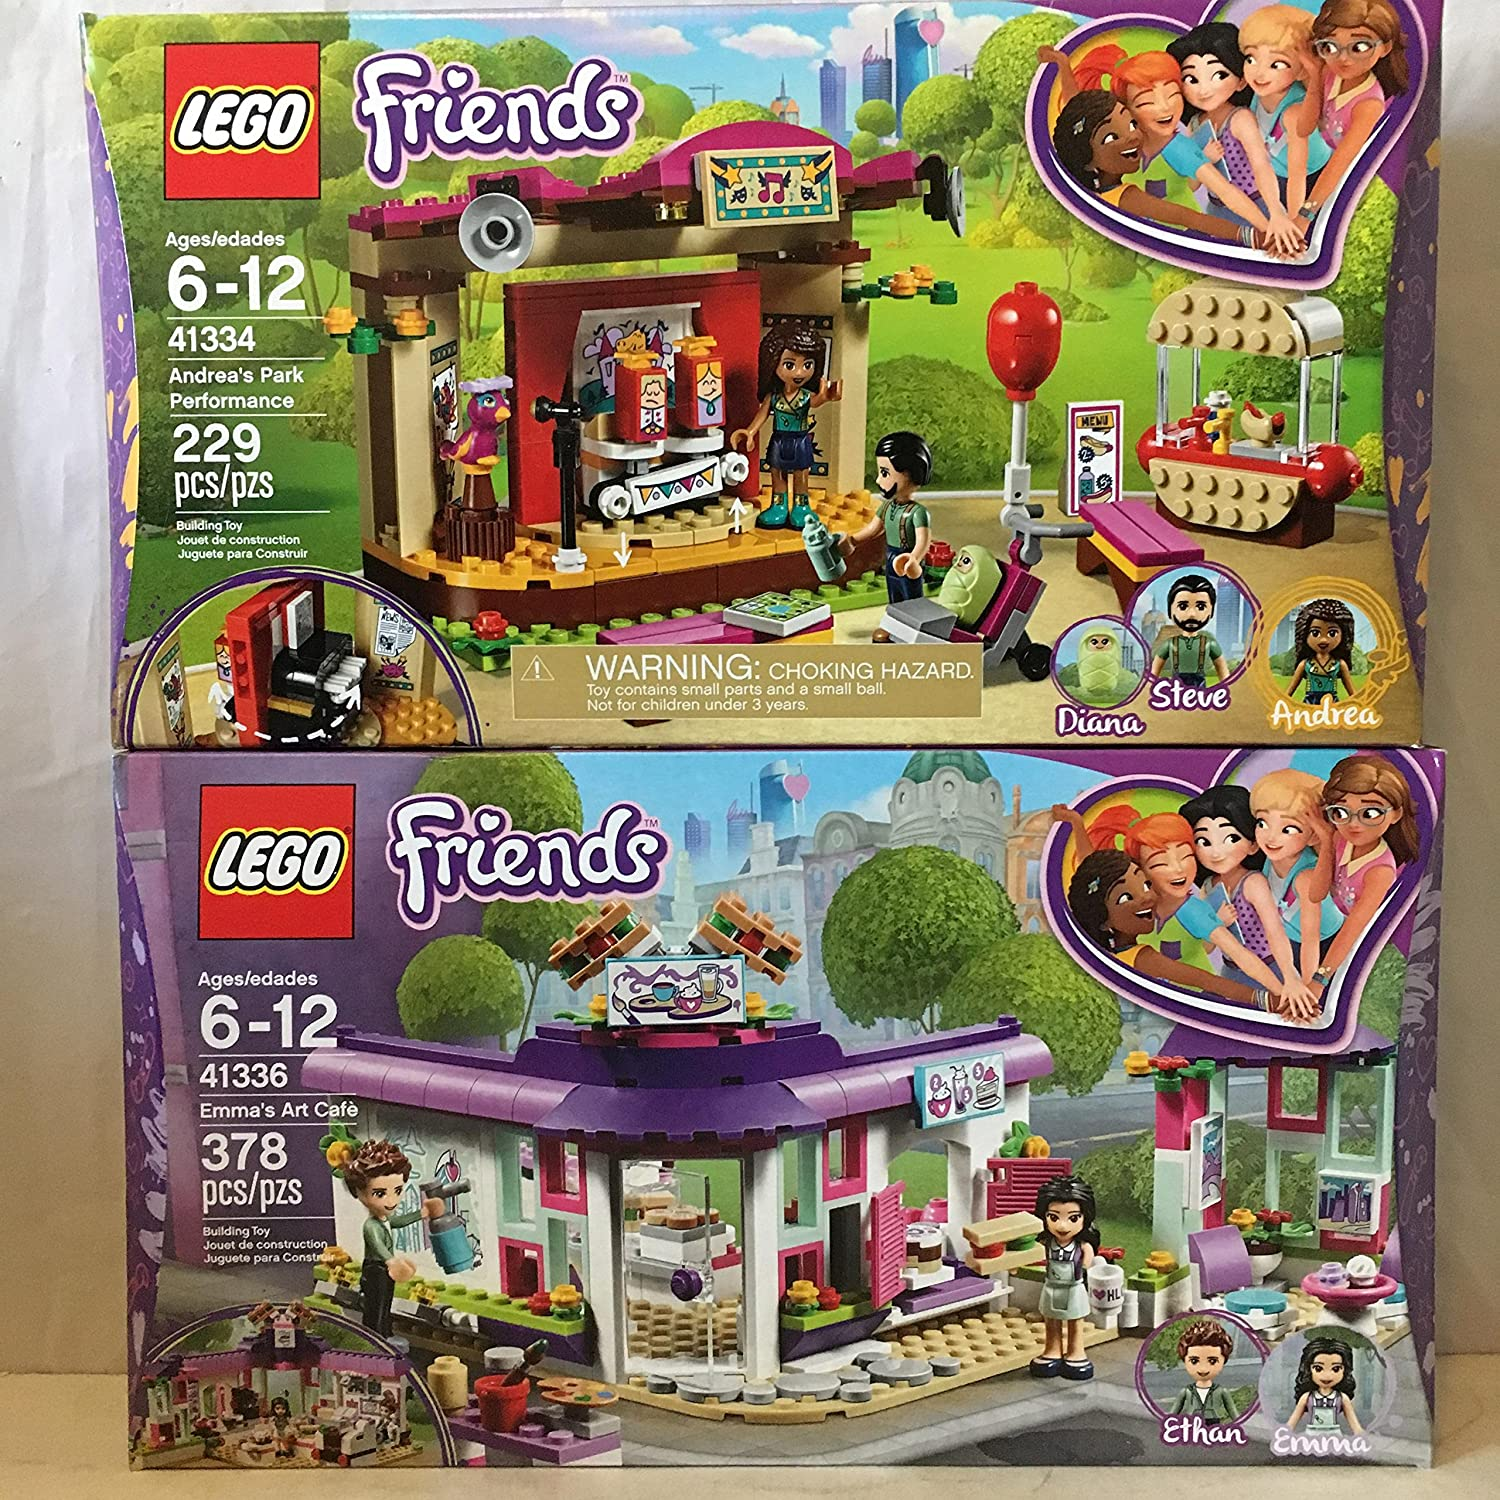 e22942a8a9b Amazon.com  LEGO Friends Emma s Art Café   LEGO Friends Andrea s Park  Performance  Toys   Games